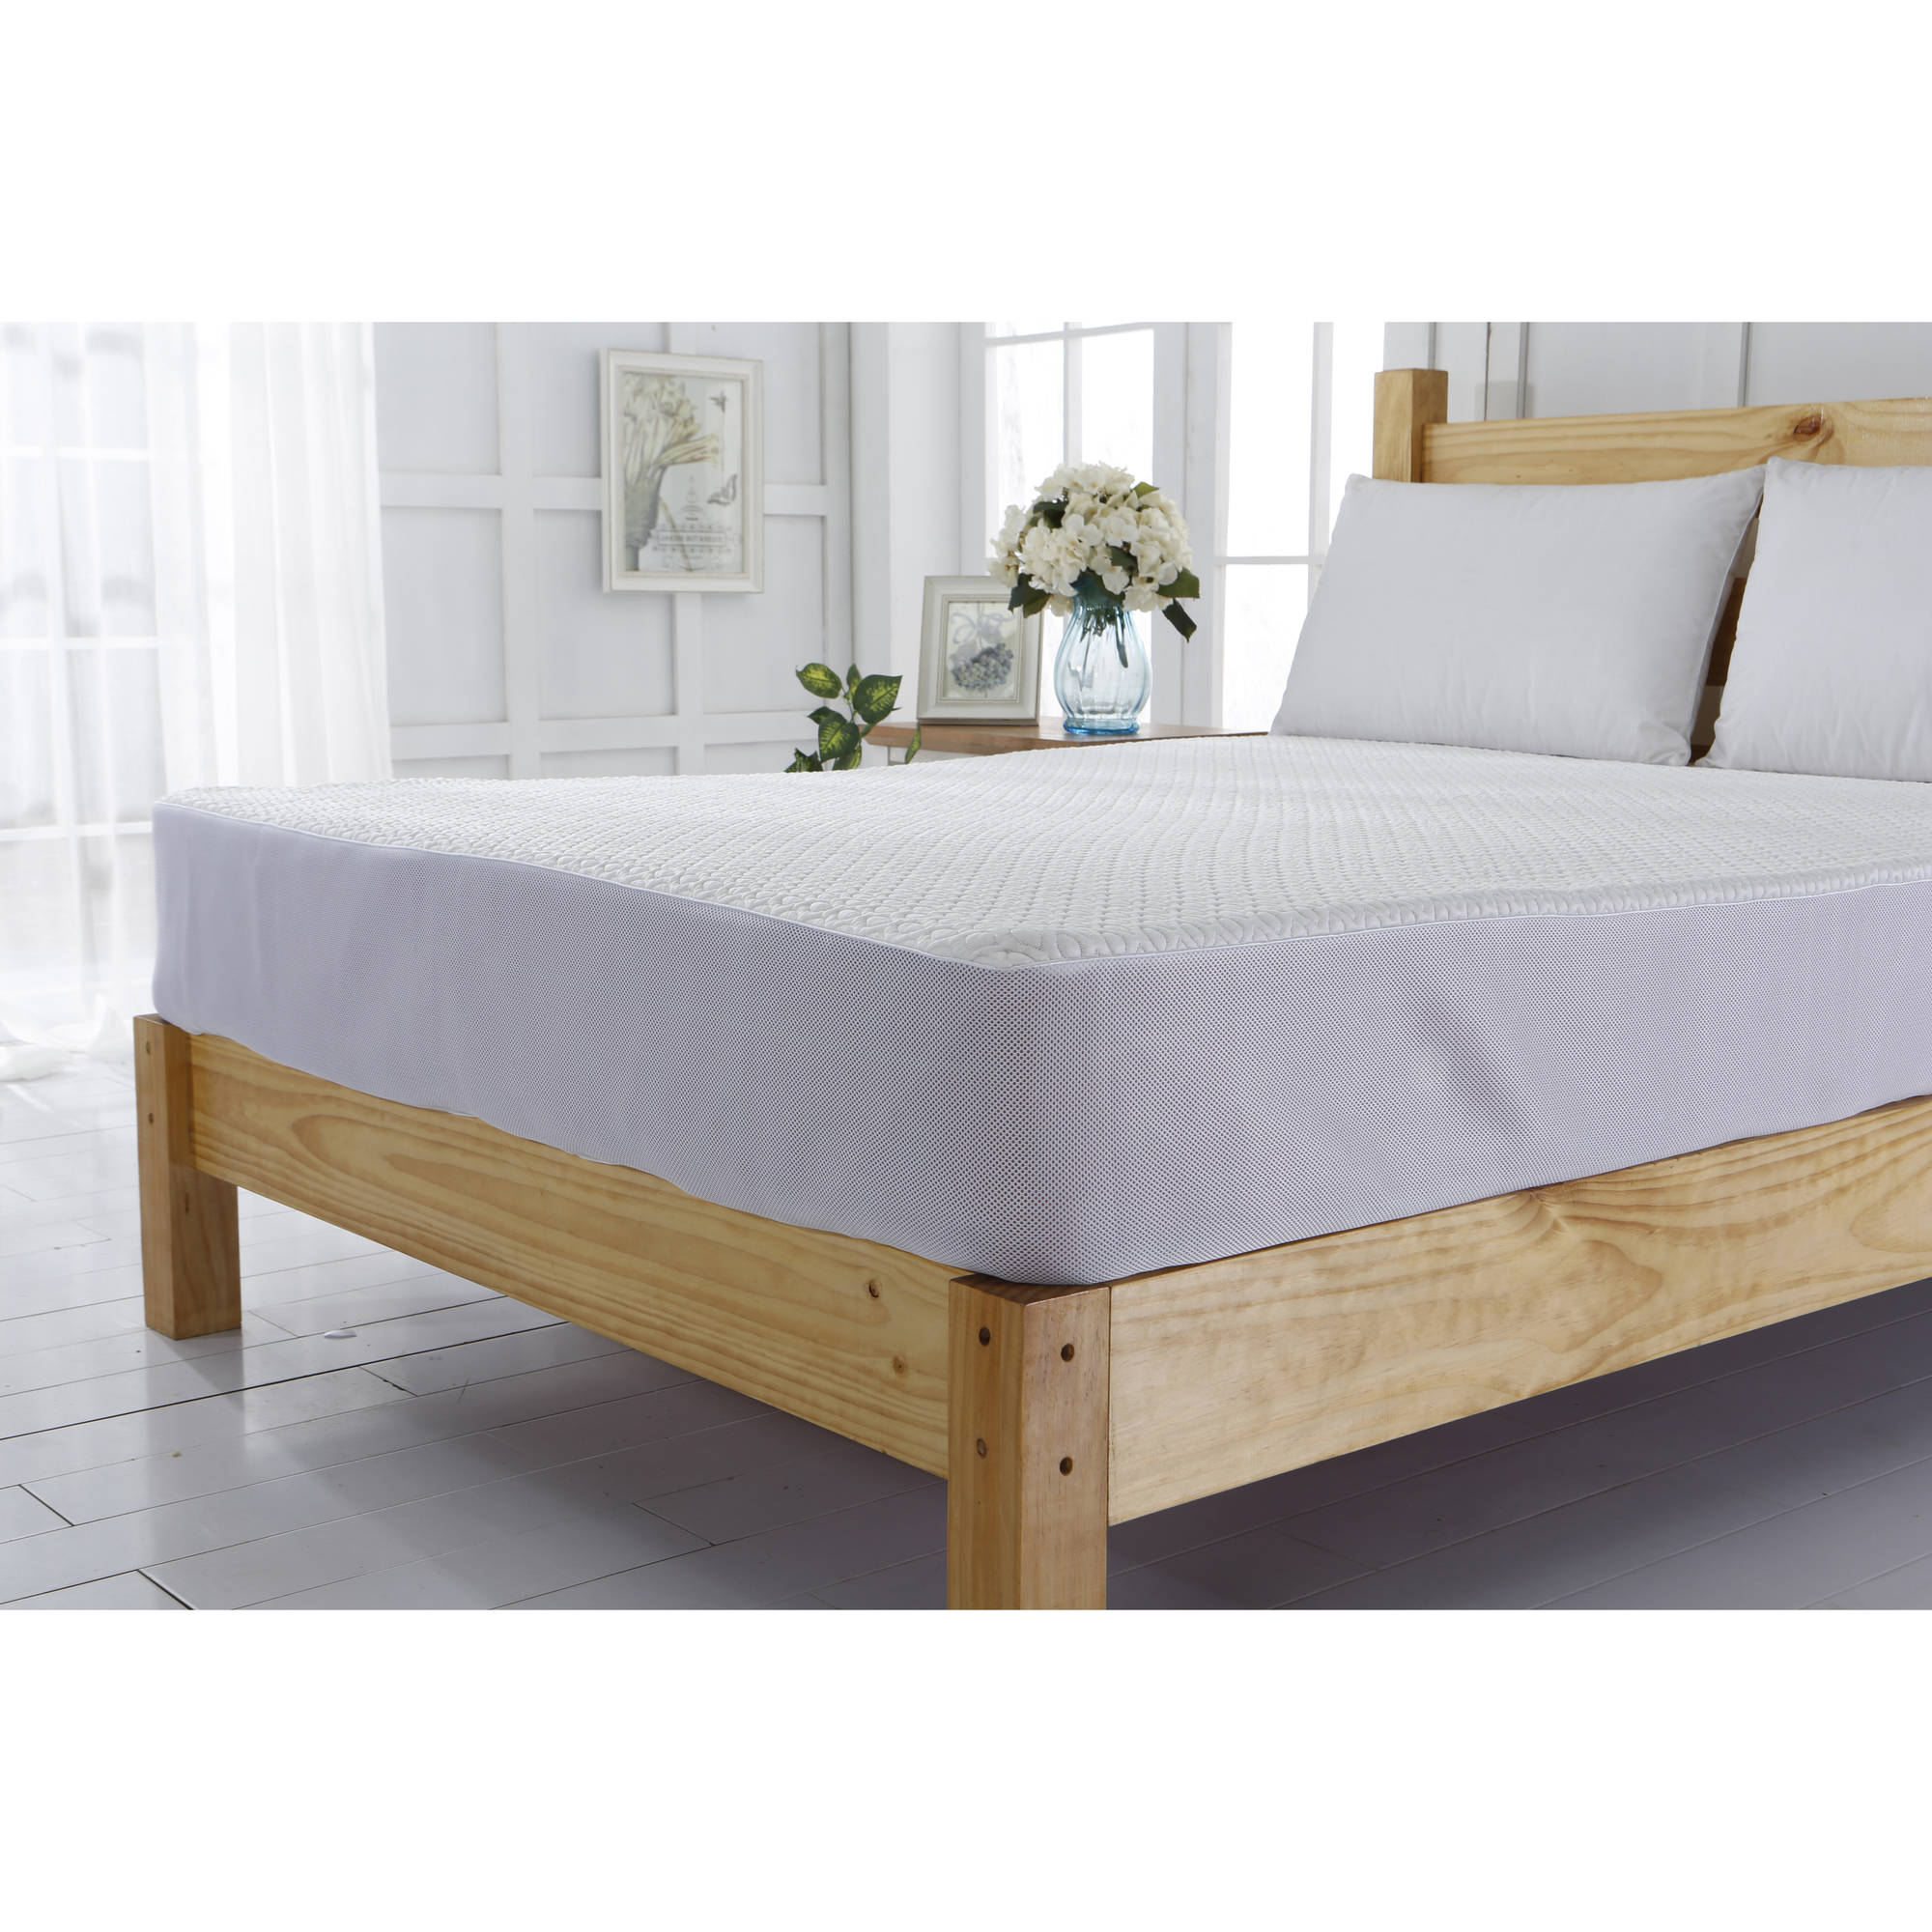 Mattress Covers At Walmart Image Result For Futon